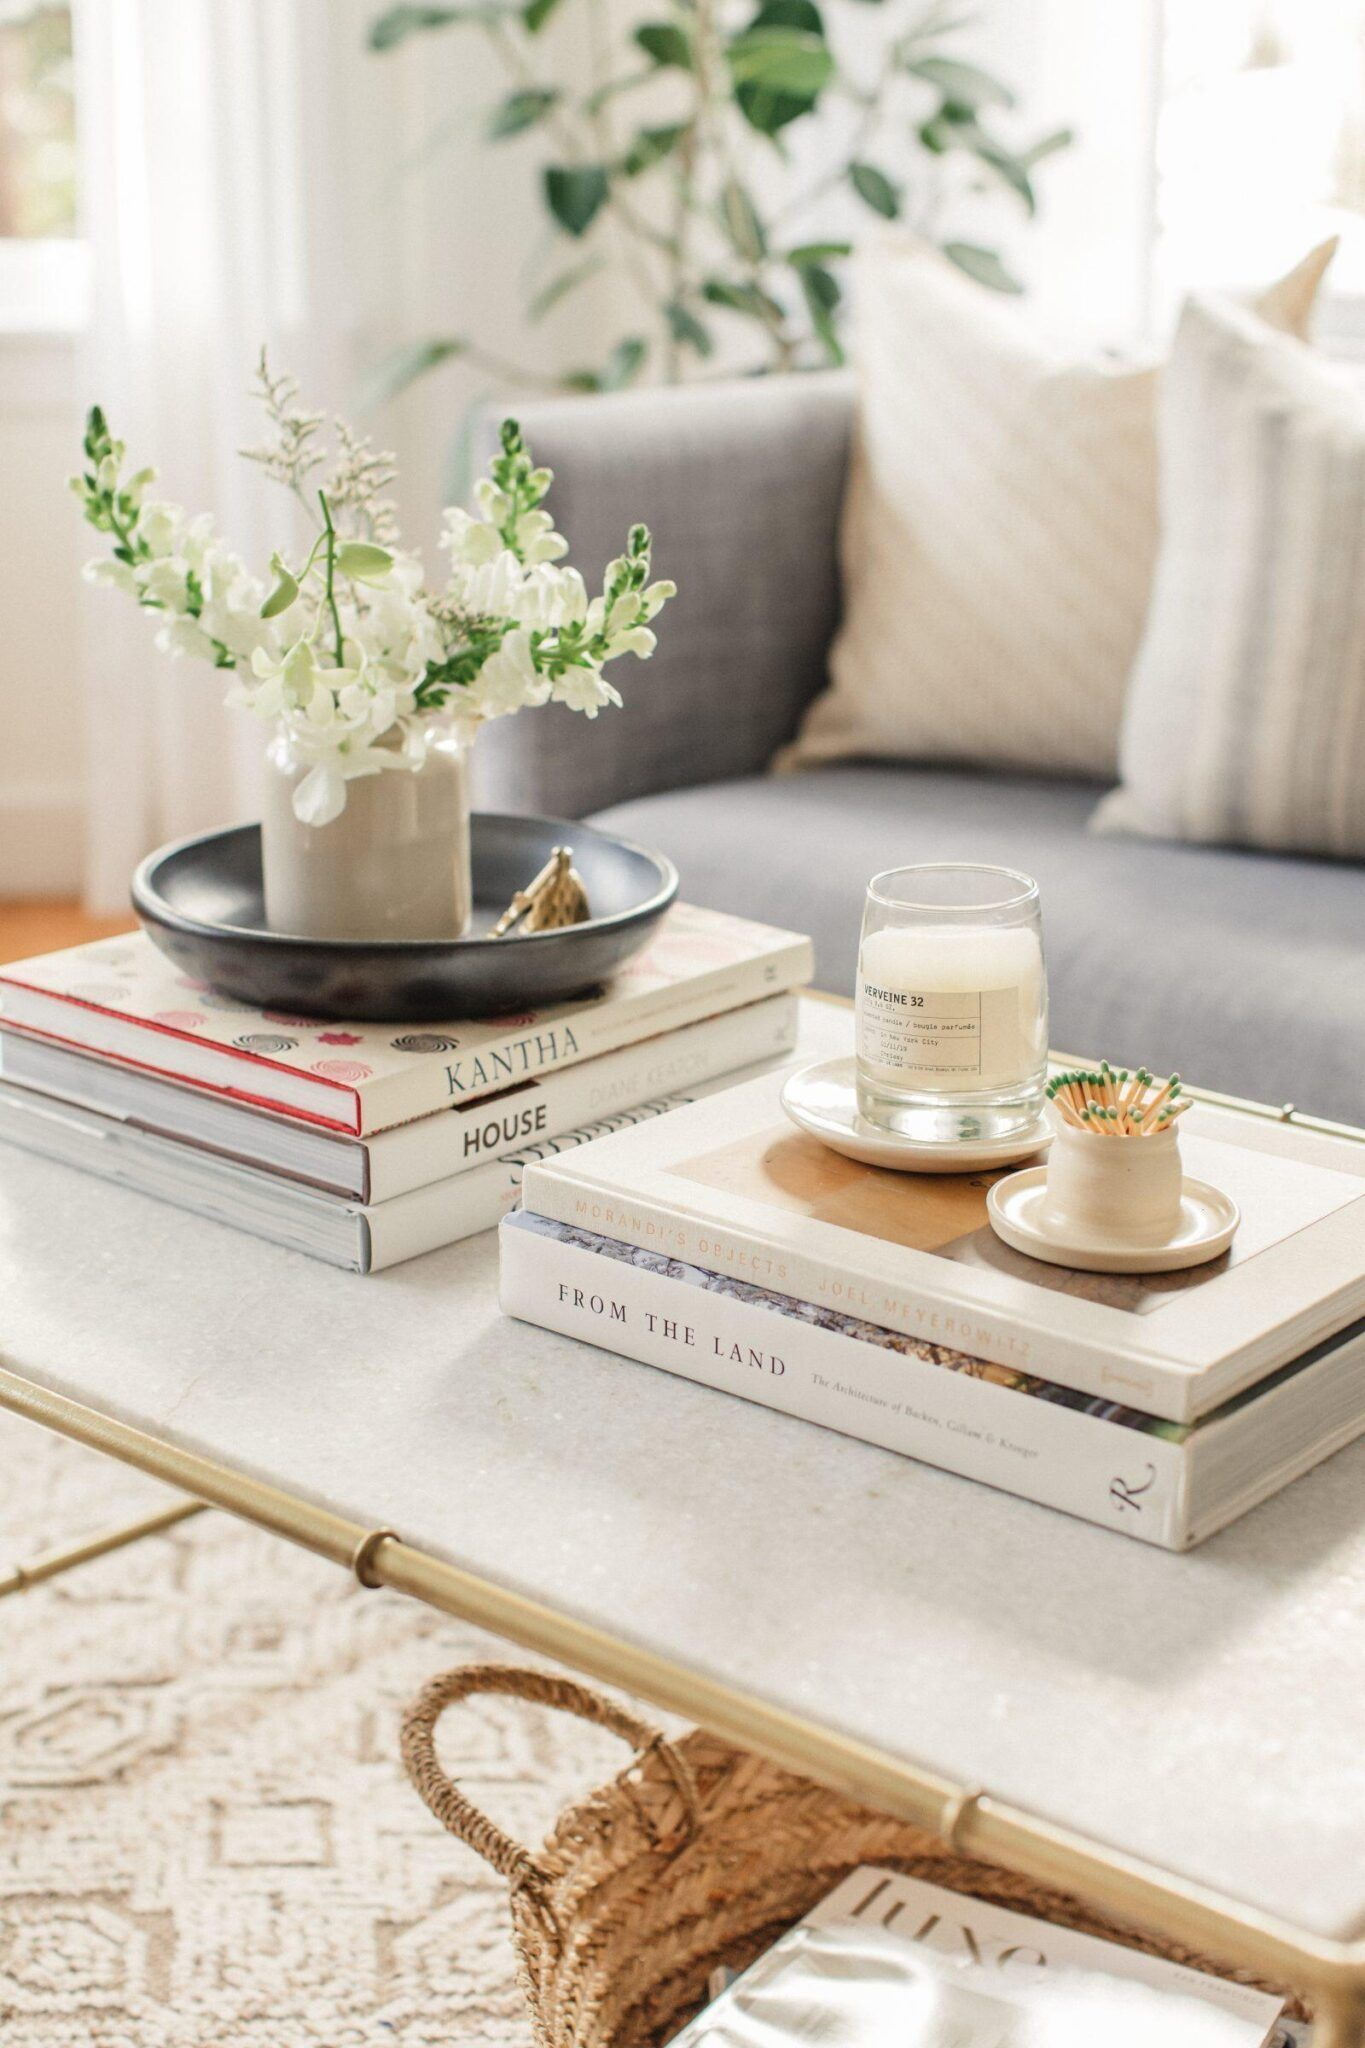 Coffee Table Books For A Stylish Home Coffe Table Decor Coffee Table Styling Simple Coffee Table